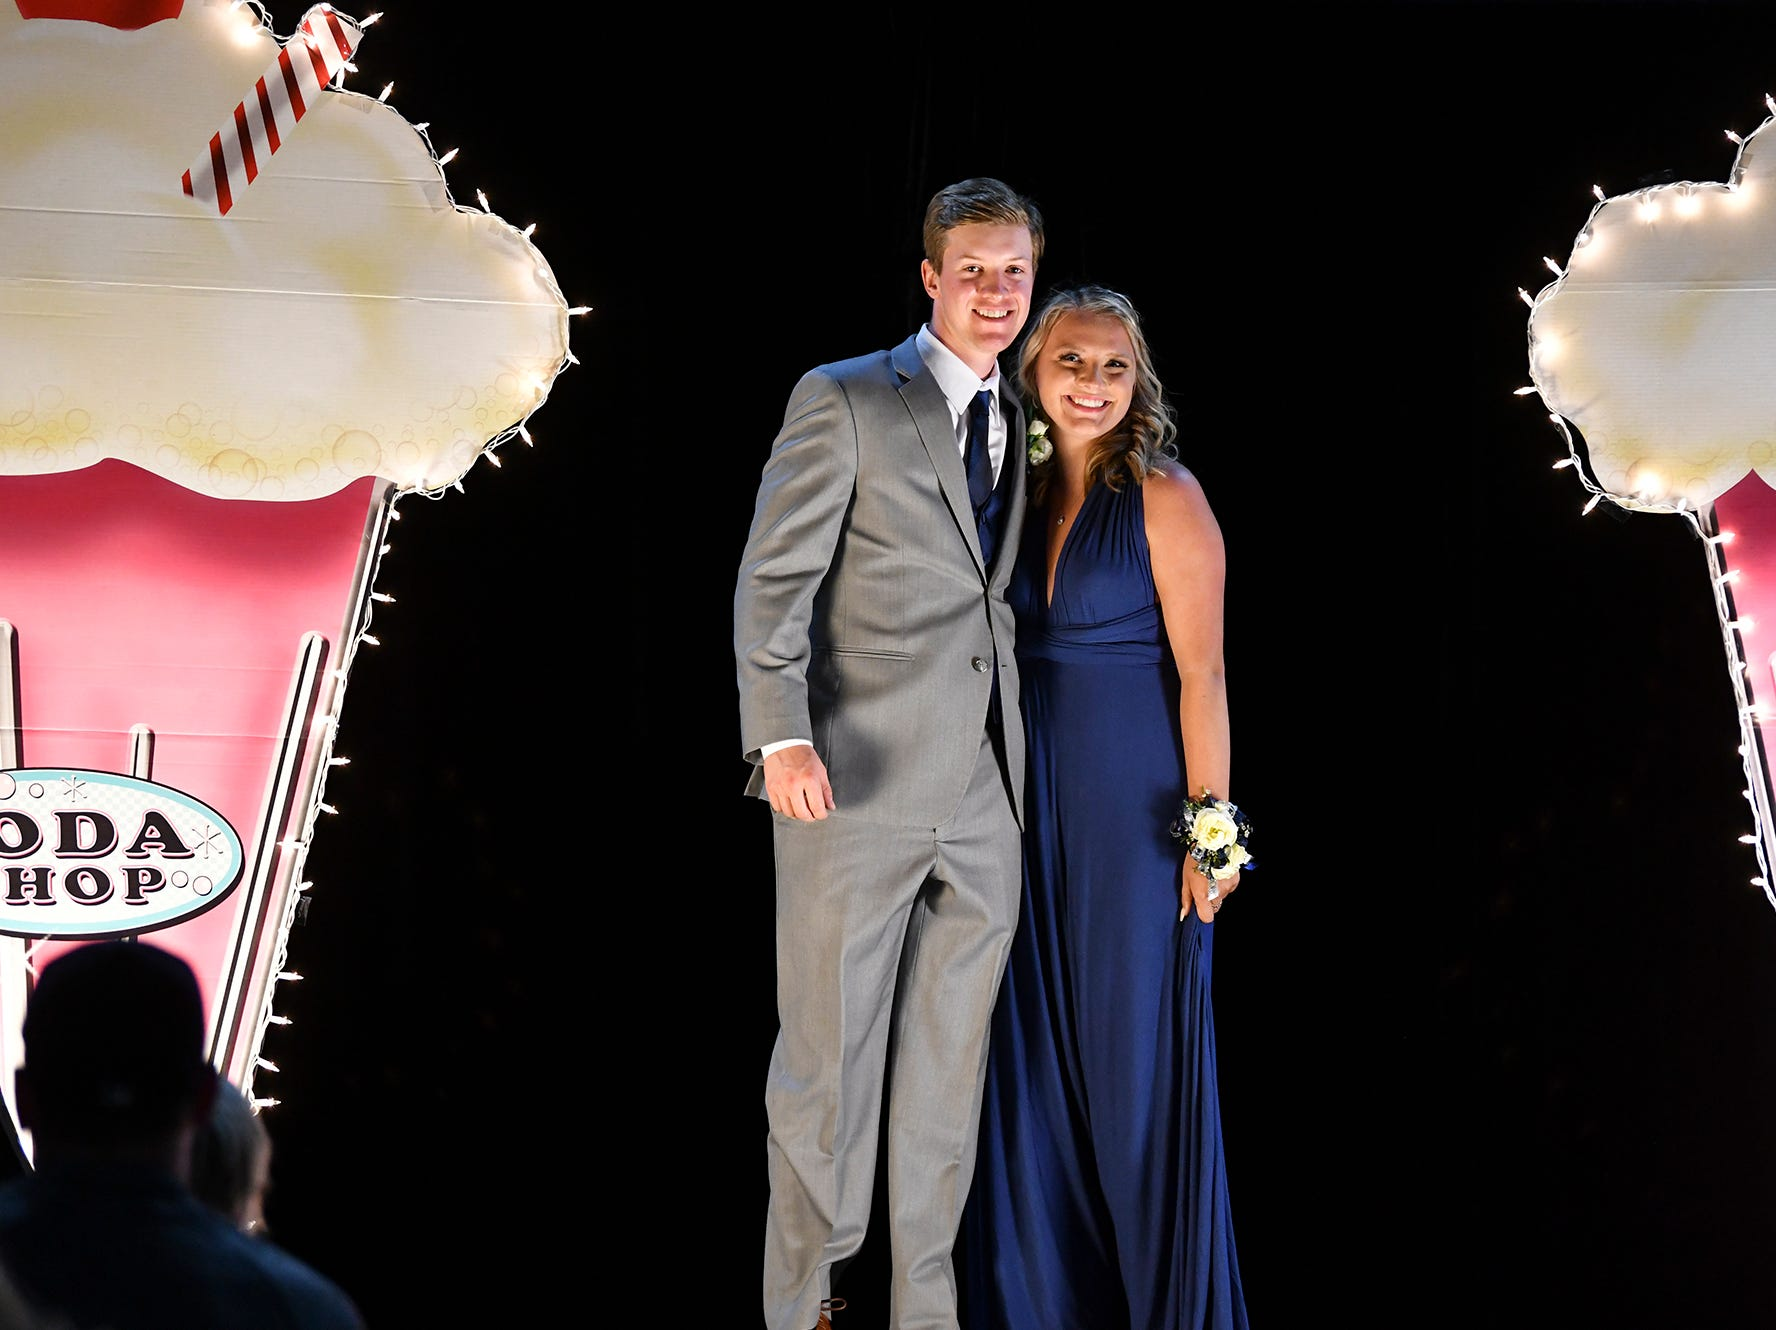 Couples take their turn on the grand march route during Sartell High School's prom Saturday, May 4, at the River's Edge Convention Center in St. Cloud.